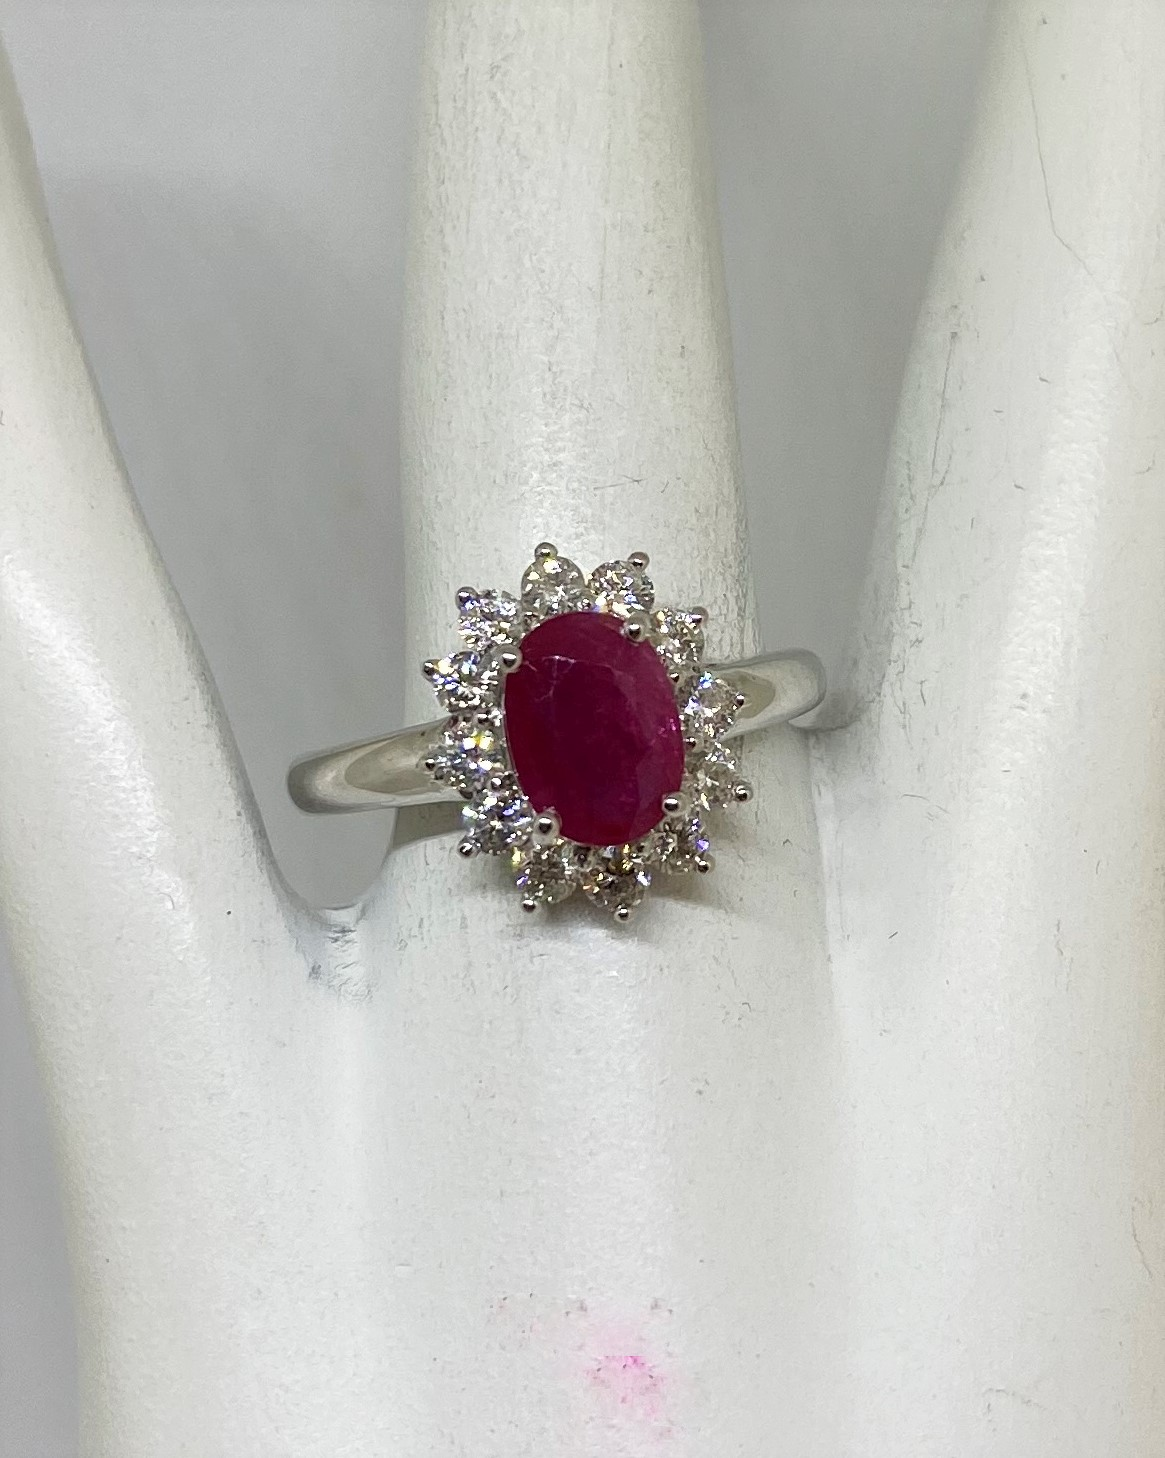 1.25 Carats Ruby Diamond Ring